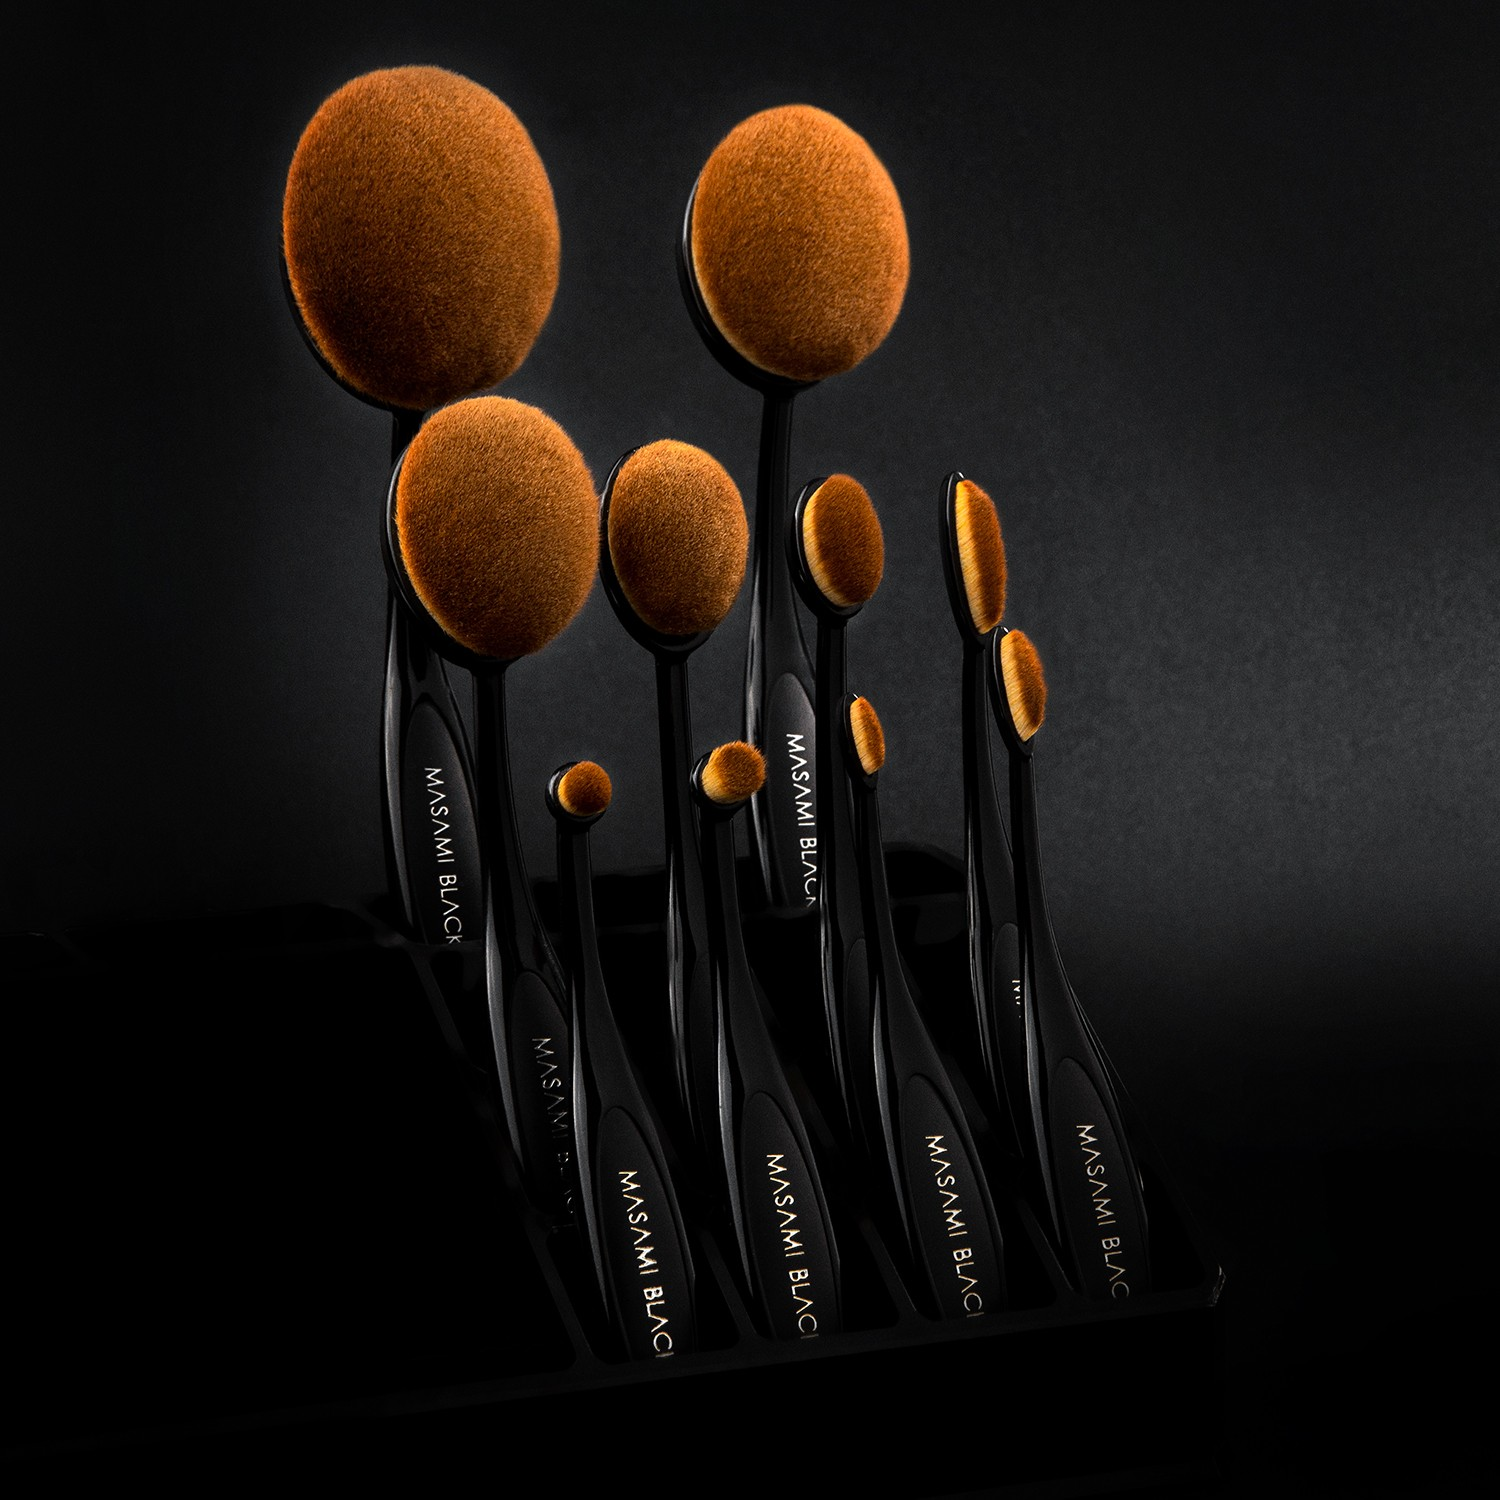 Masami Black The Artist Brush 10 Pieces